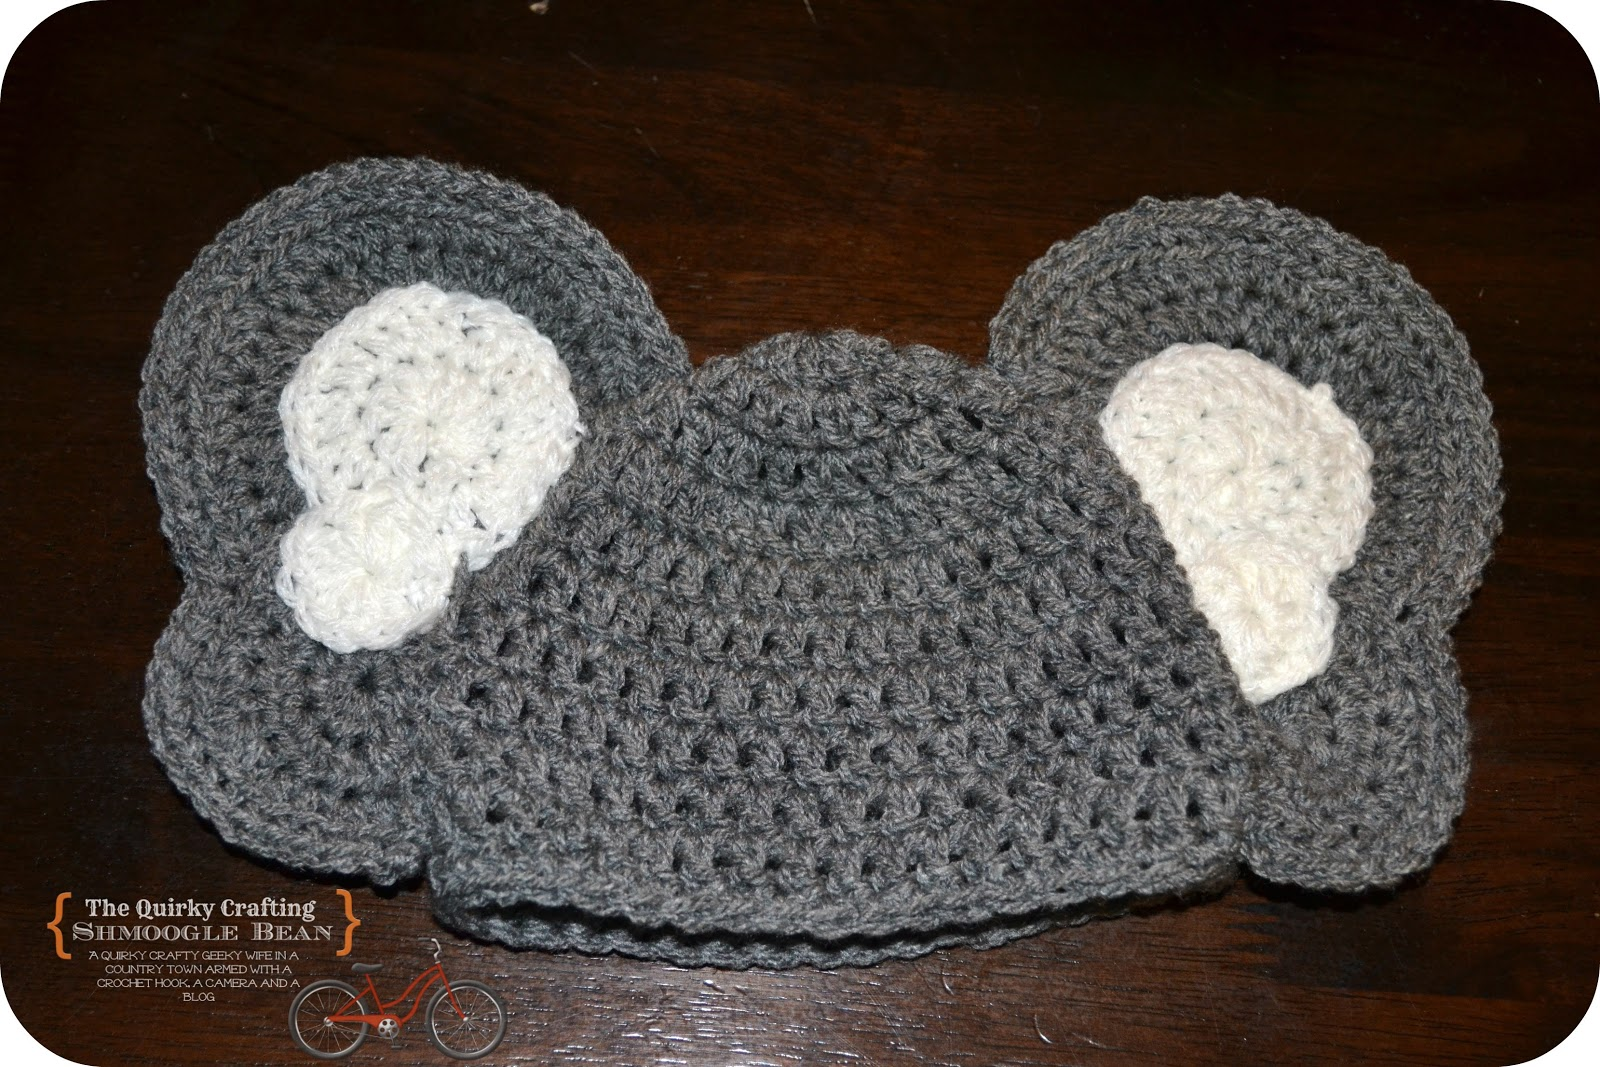 Crochet Pattern For Baby Hat With Ears : The Quirky Crafting Shmoogle Bean: Newborn Baby Heffalump ...